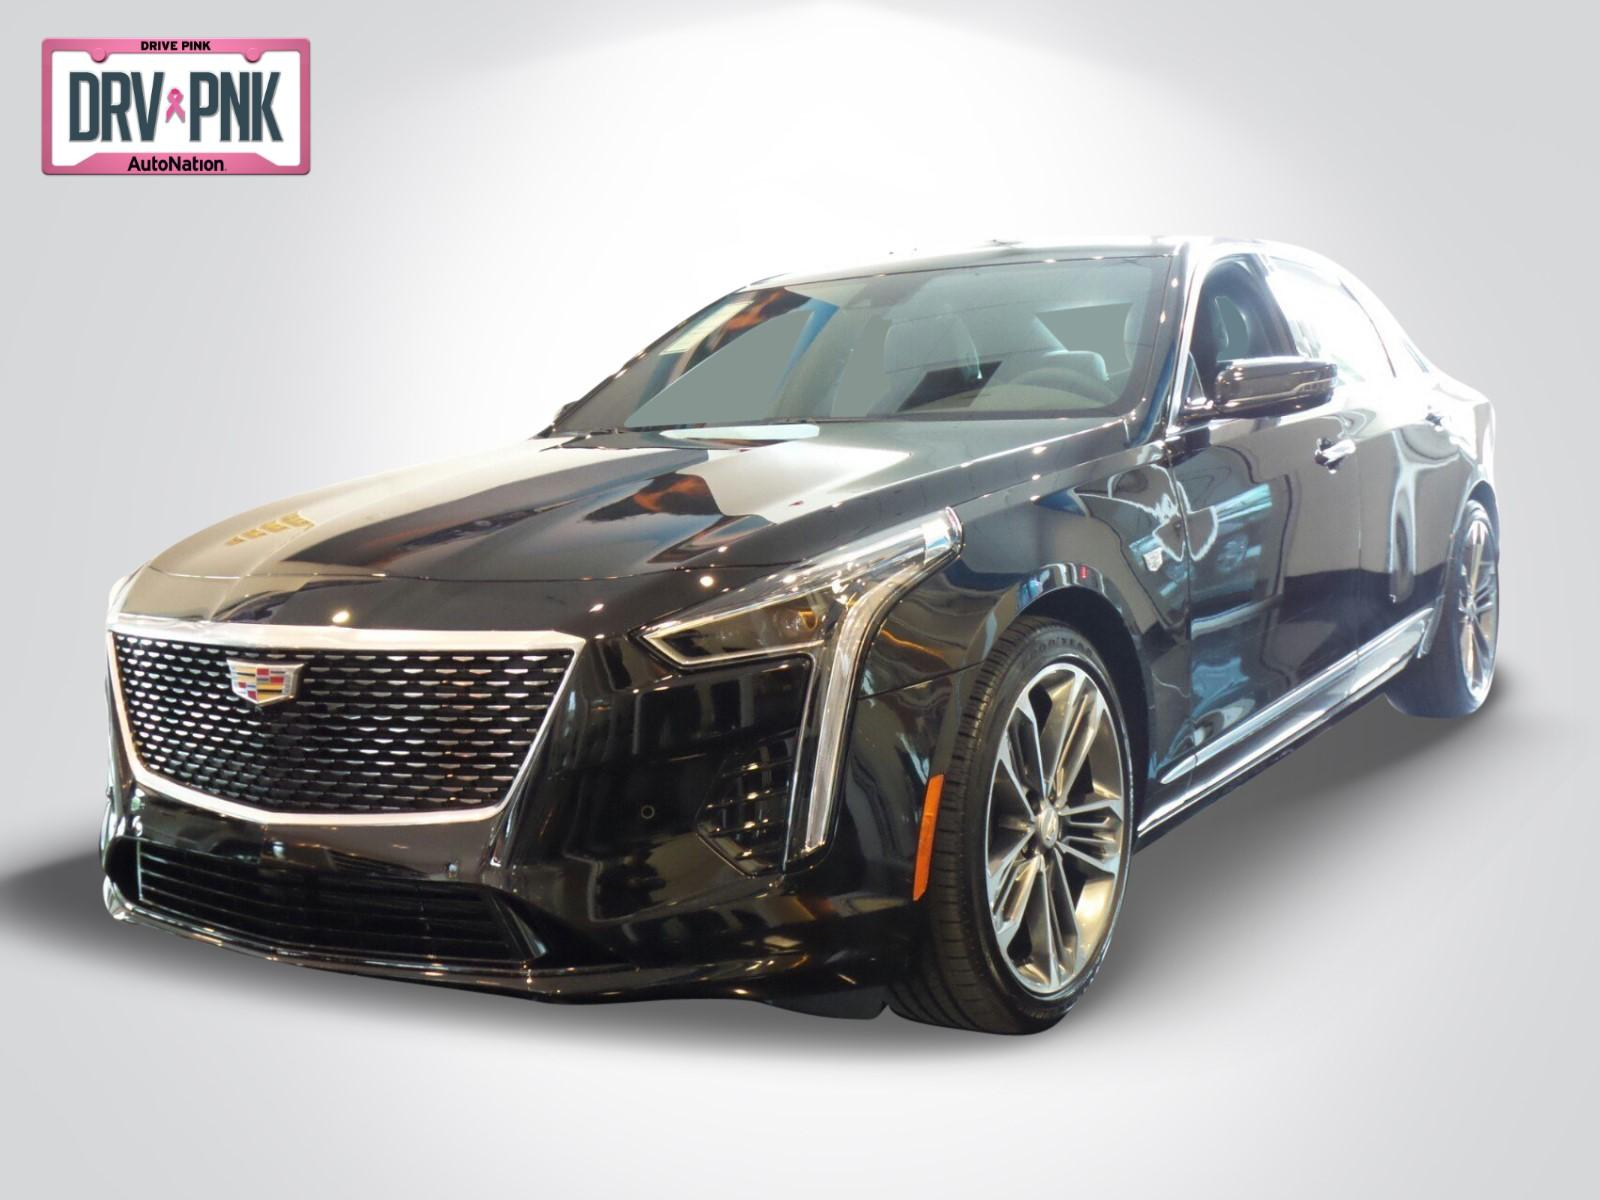 2021 Cadillac Ct6 Lease, Configurations, Colors | Cadillac ...